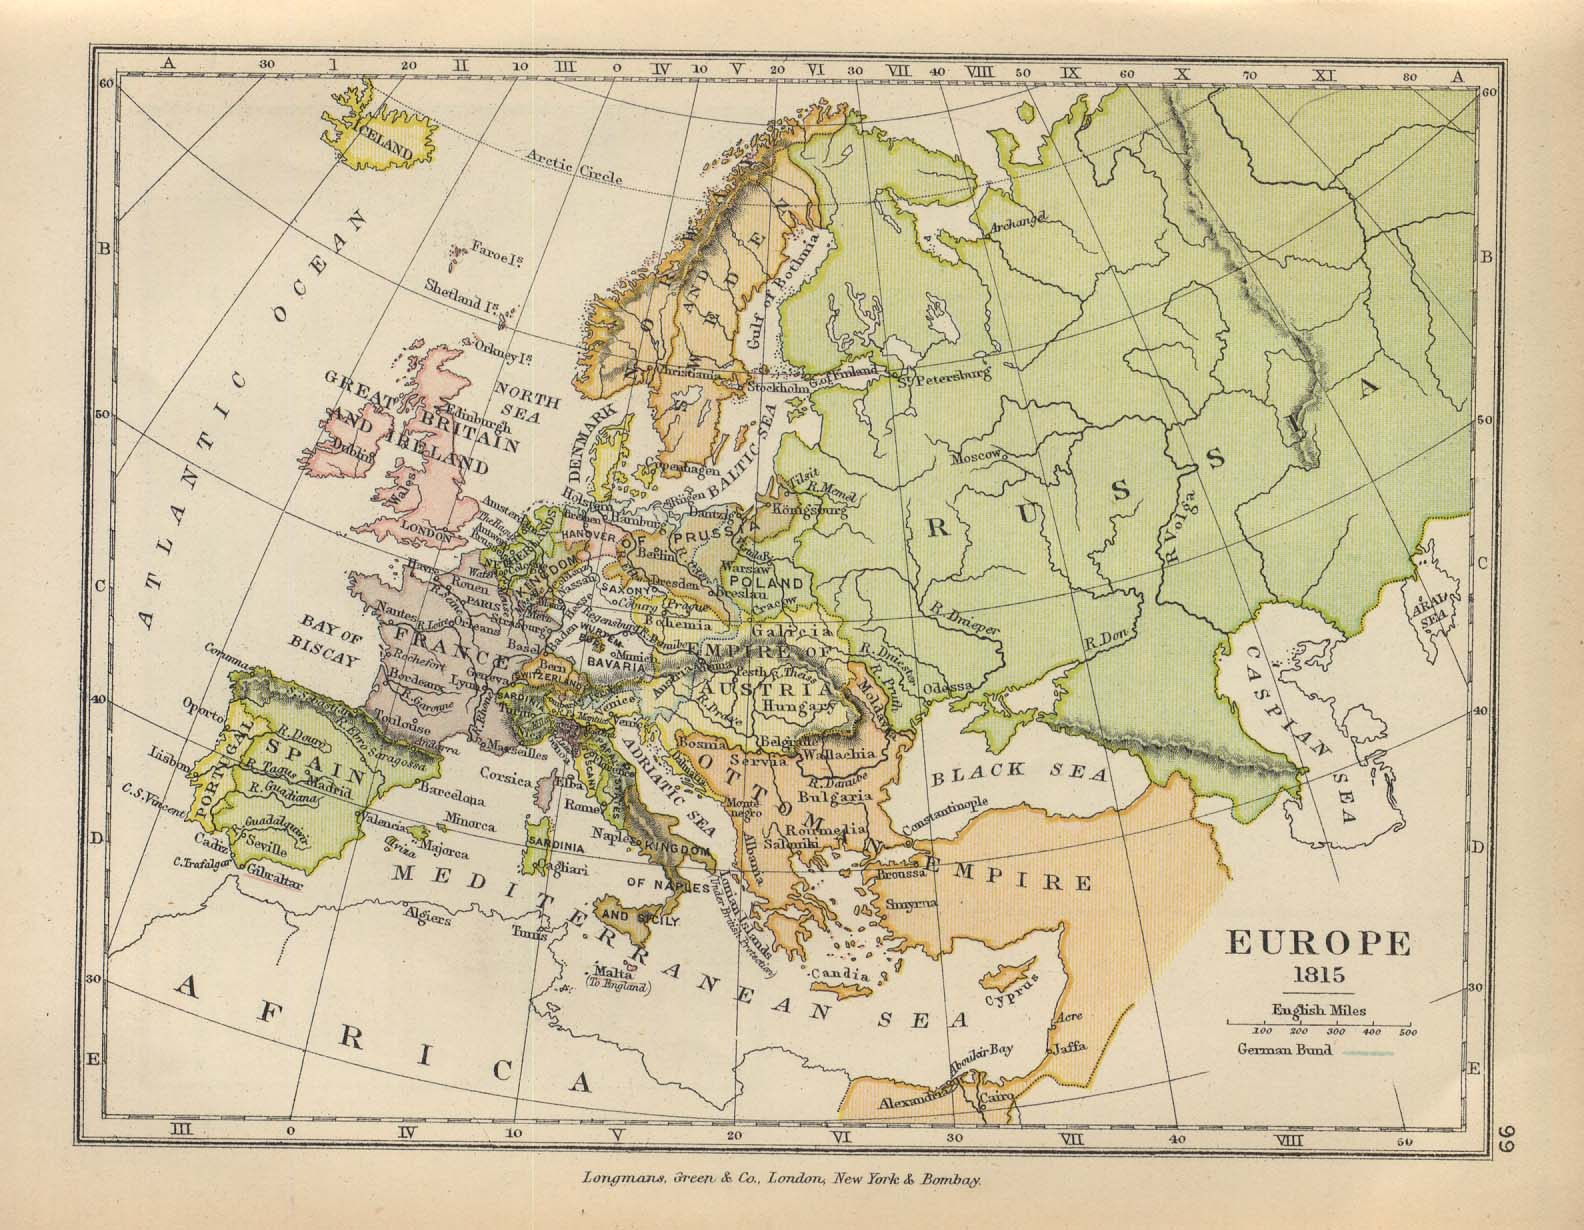 Europe Historical Maps   Perry Casta    eda Map Collection   UT Library     Europe Historical Maps   Perry Casta    eda Map Collection   UT Library Online